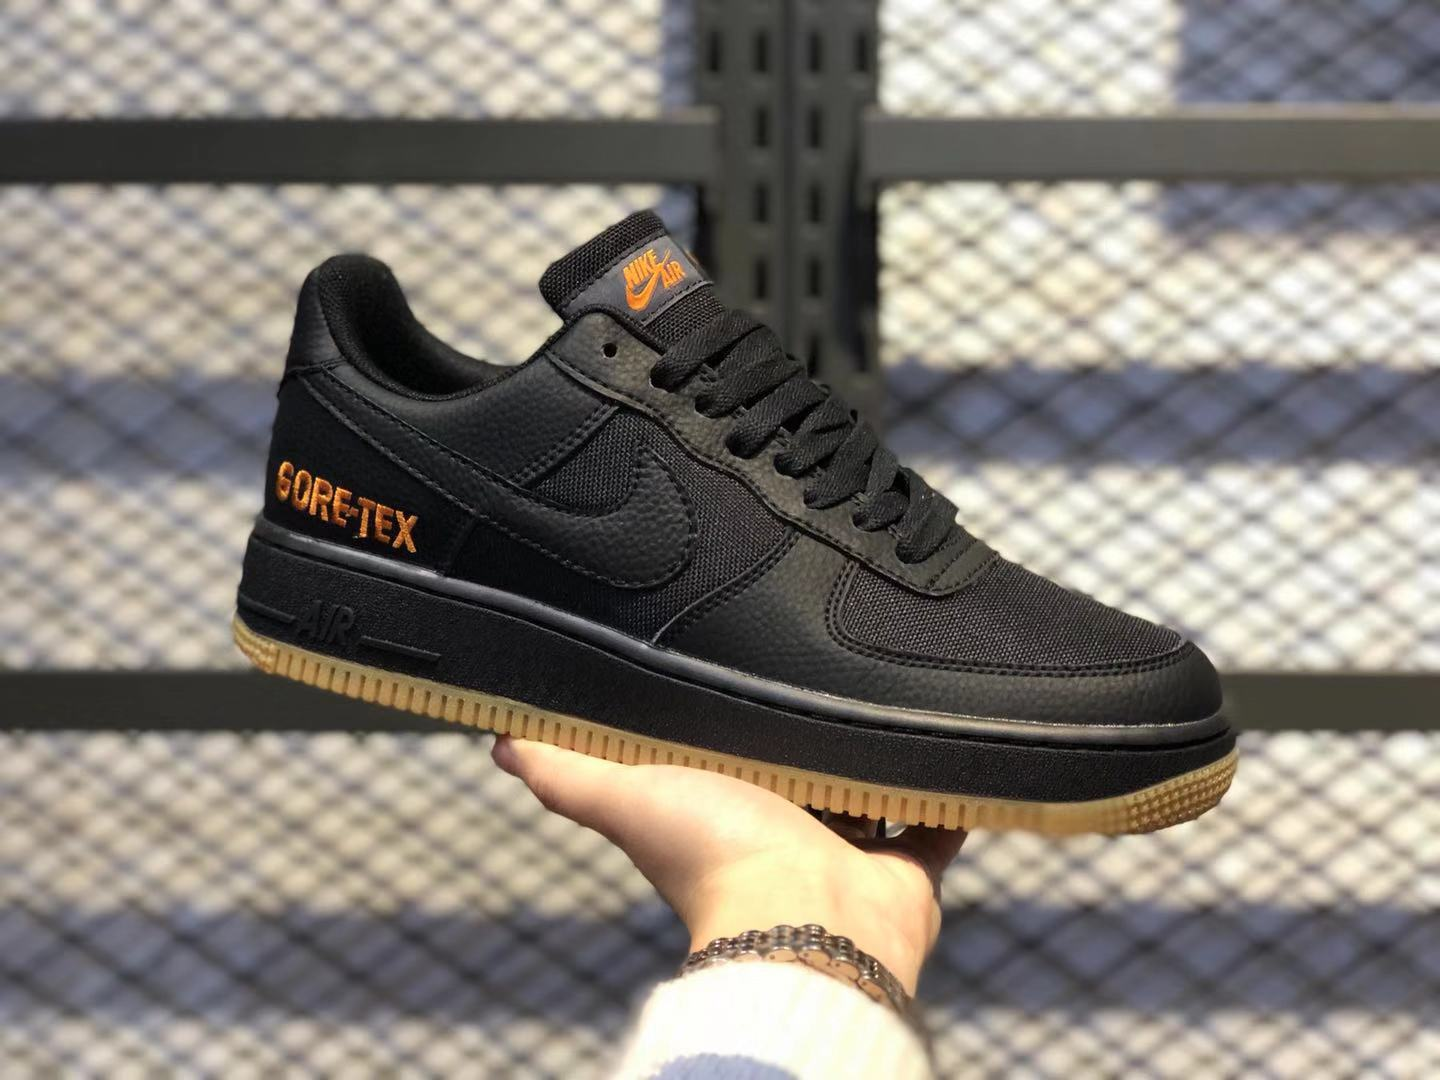 Nike Air Force 1'07 Gore-Tex Black/Black-Yellow CK2630-001 Free Shipping